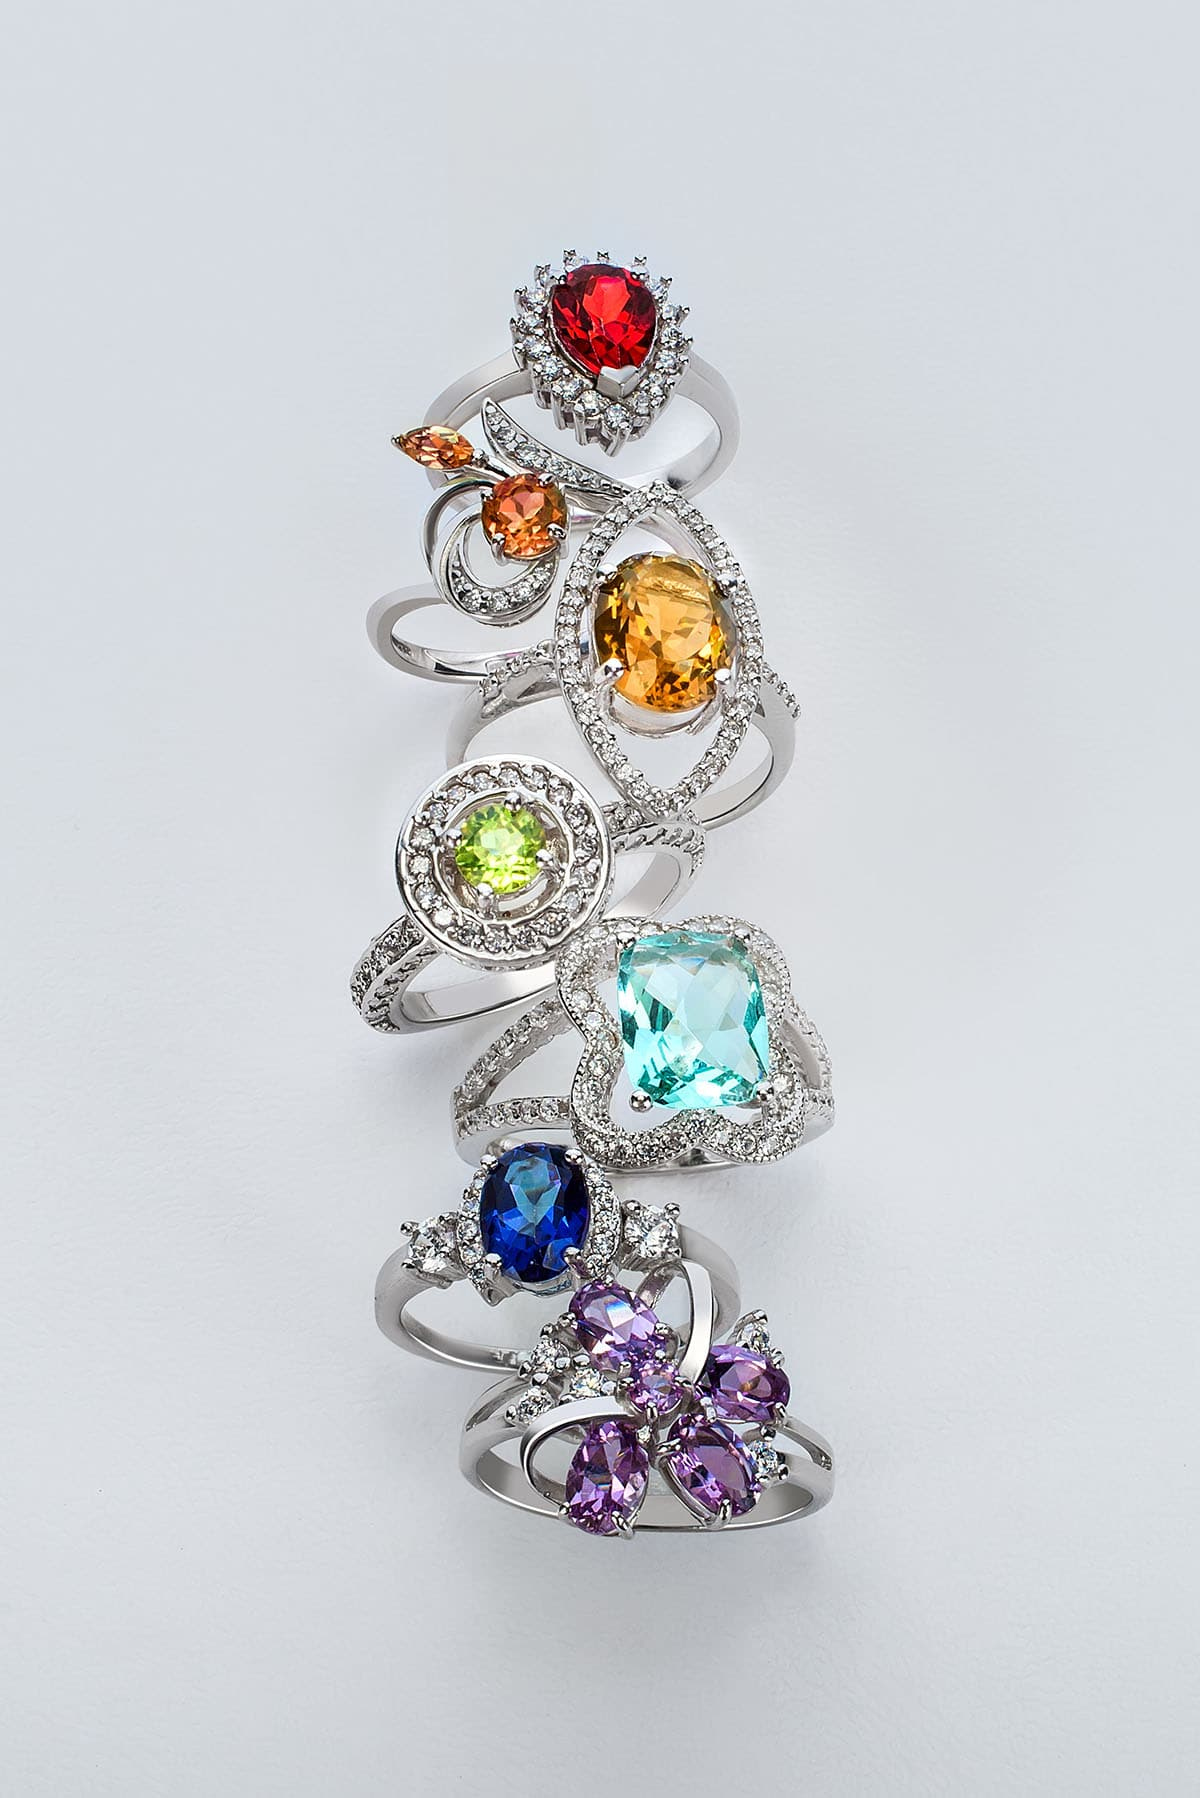 Rings is a range of different colored gemstones